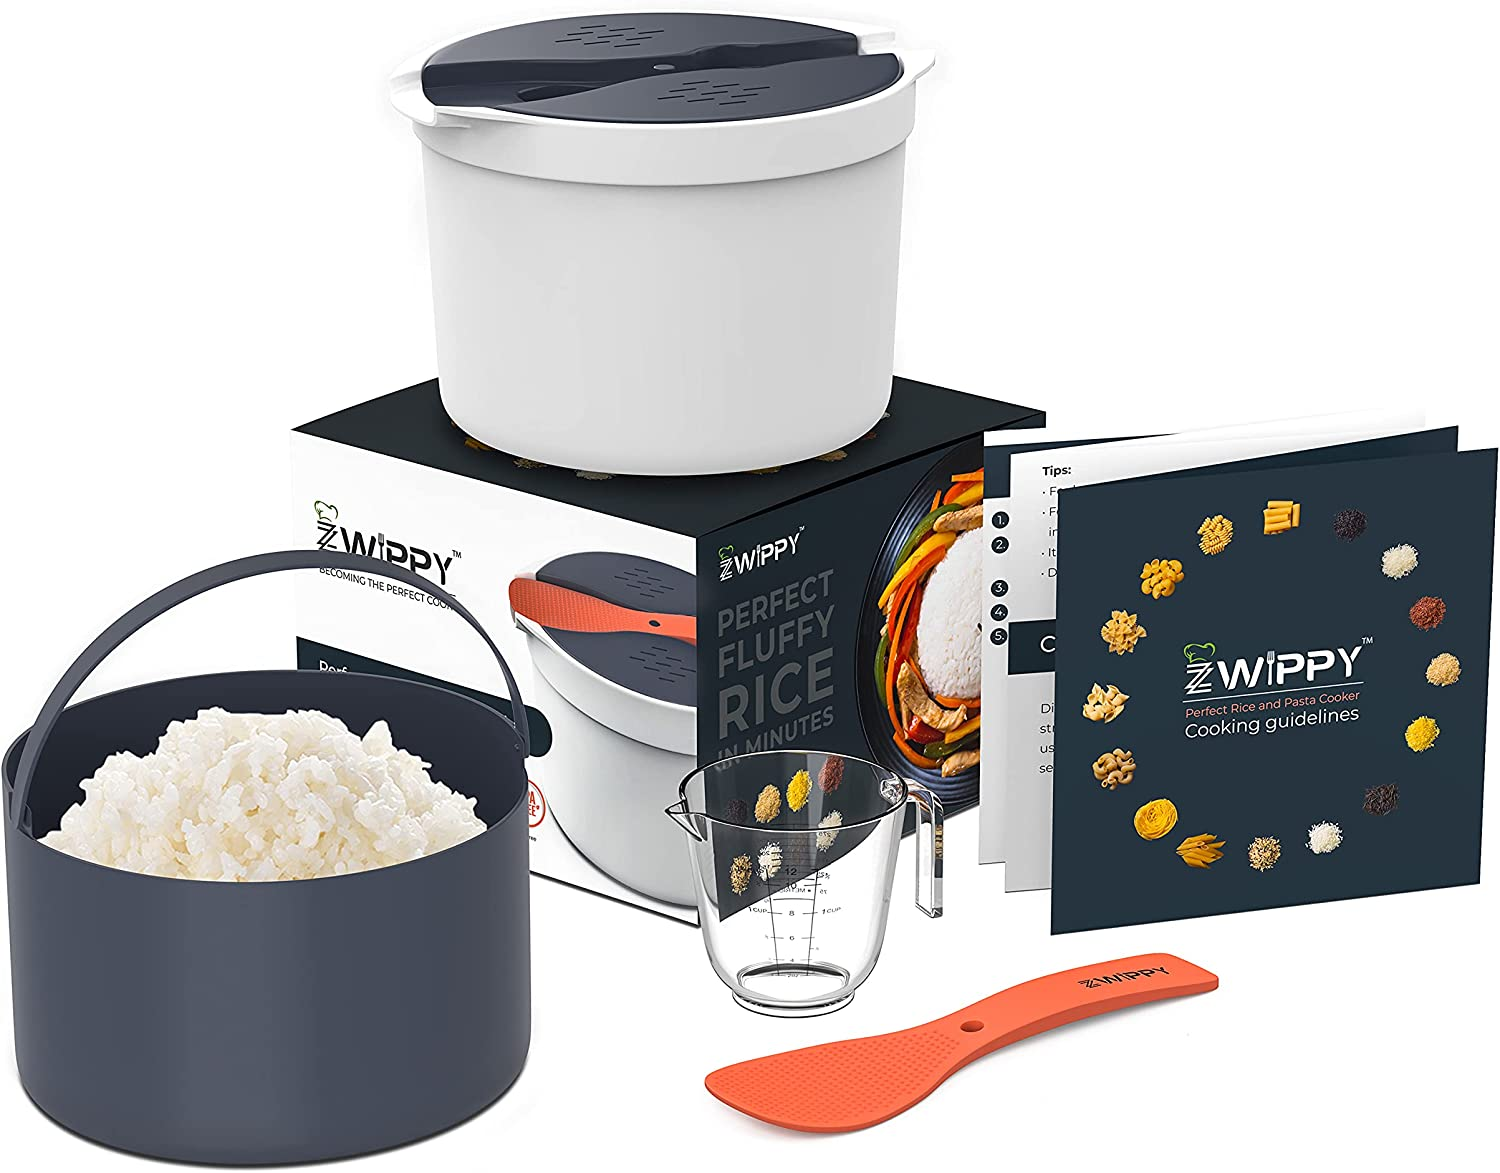 Zwippy Microwave Rice and Under blast sales Pasta Cooker Easy Max 62% OFF or Cooking Reheati -